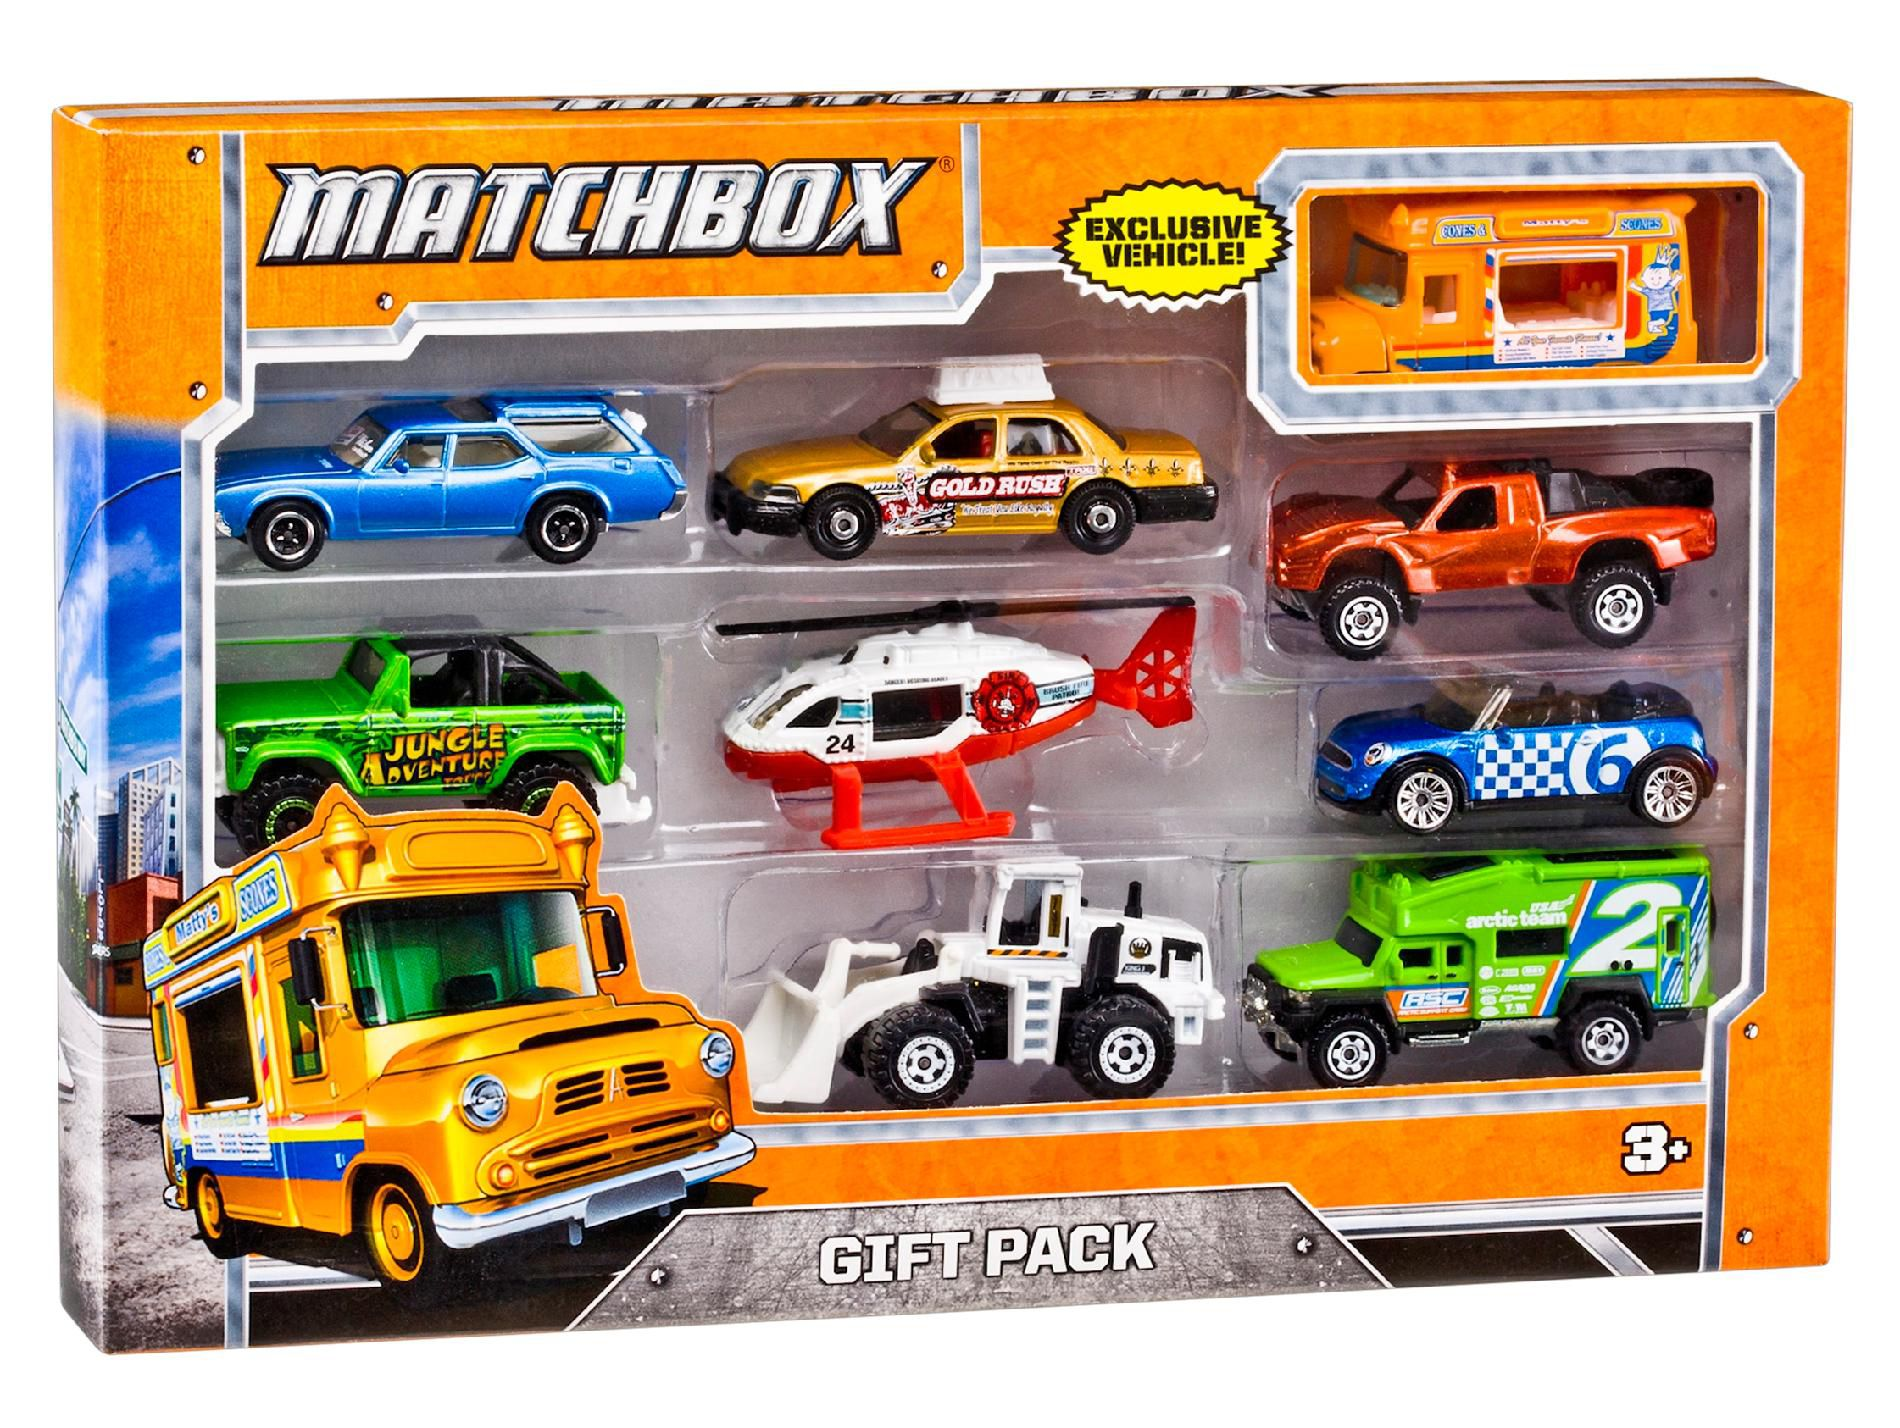 9 VEHICLE GIFT PACK - STYLES AND COLORS MAY